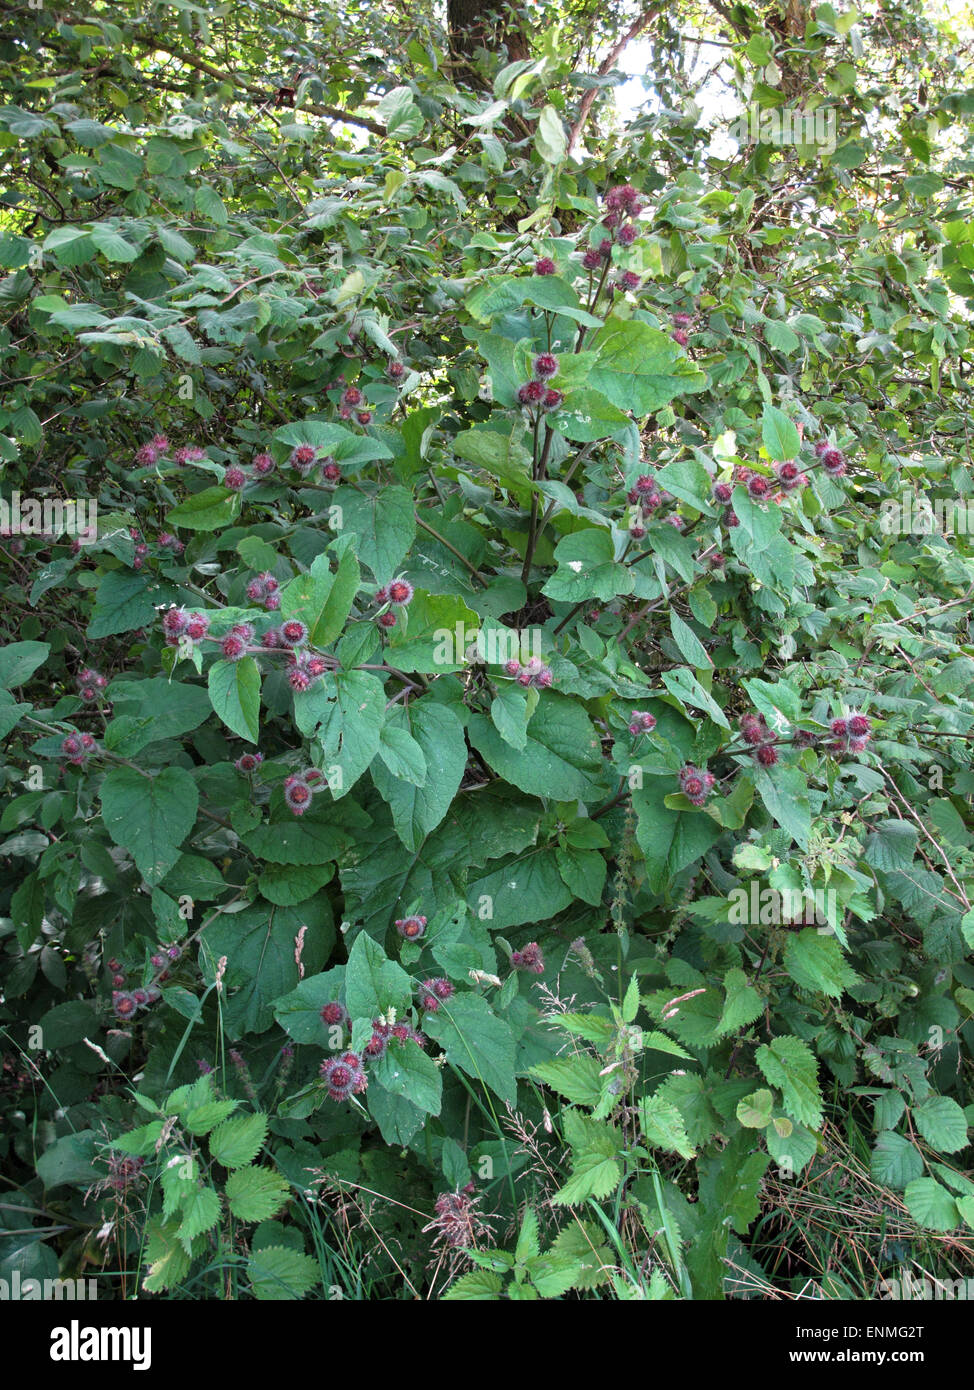 Lesser burdock, Arctium minus, flowering plant in woodland edge, Berkshire, July - Stock Image